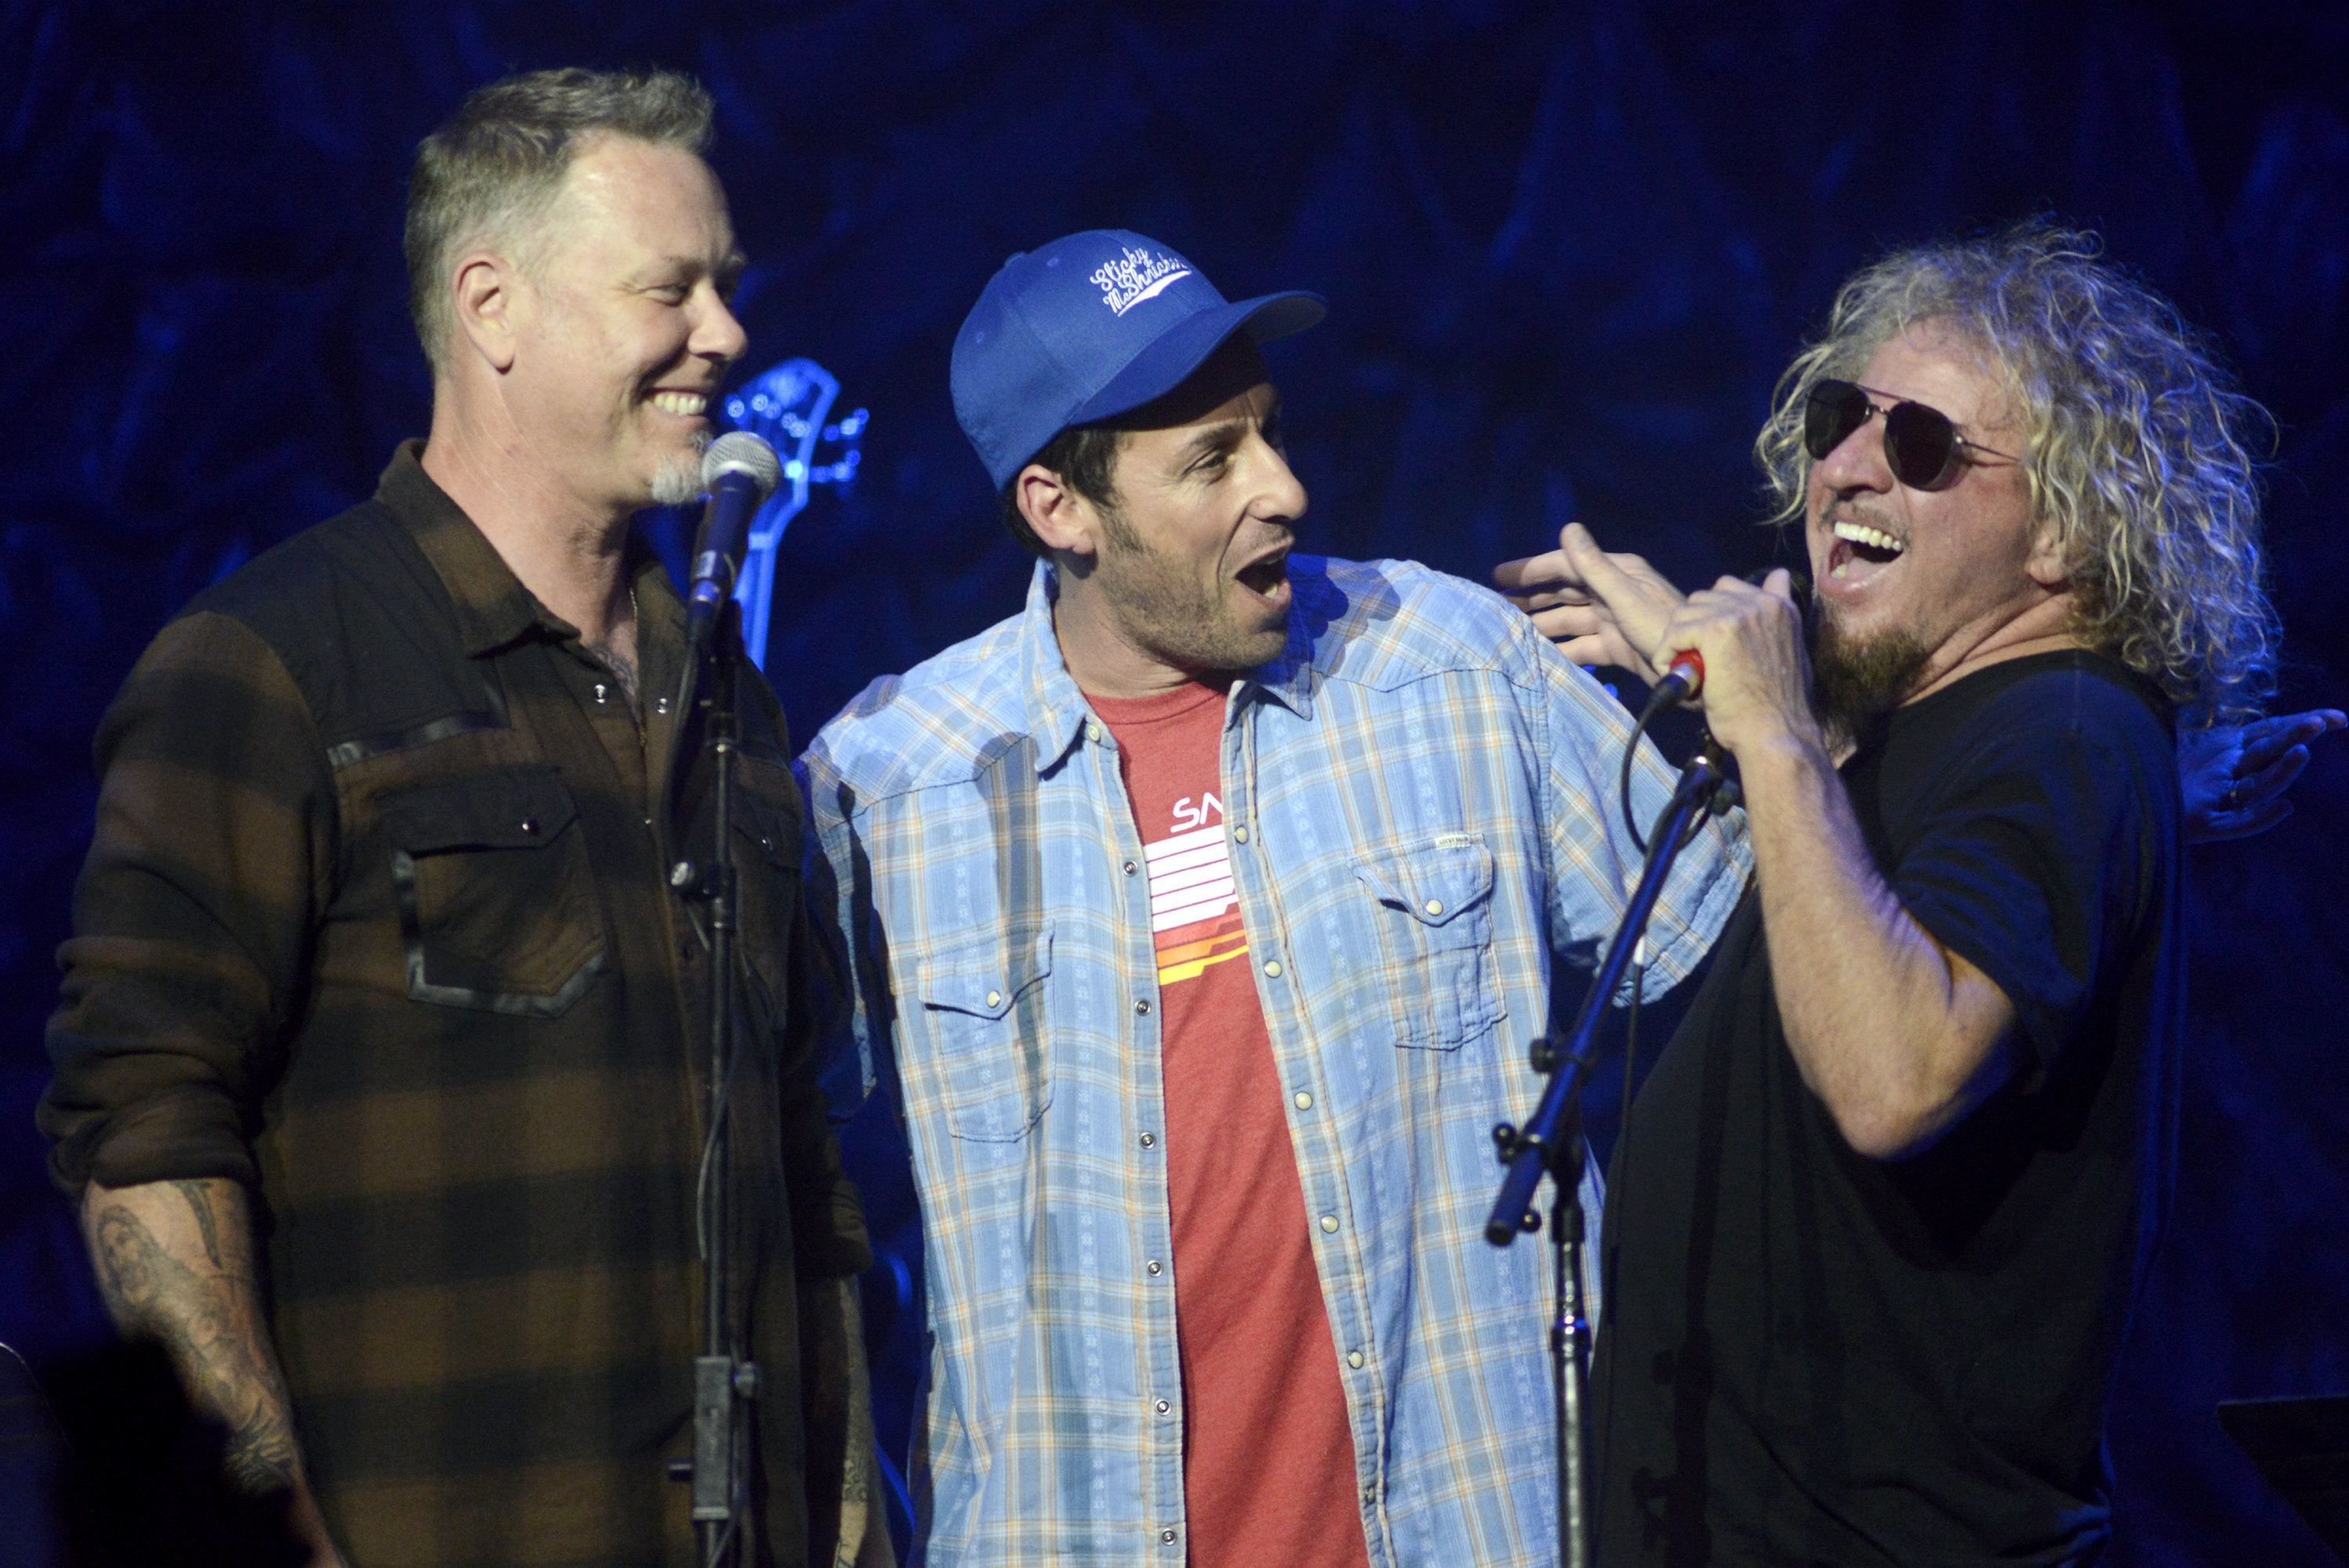 SAN FRANCISCO, CA - MAY 15:  (L - R) James Hetfield, Adam Sandler, and Sammy Hagar perform during the 2nd Annual 'Acoustic-4-A-Cure' Benefit Concert  at The Masonic Auditorium on May 15, 2015 in San Francisco, California.  (Photo by Tim Mosenfelder/Getty Images)